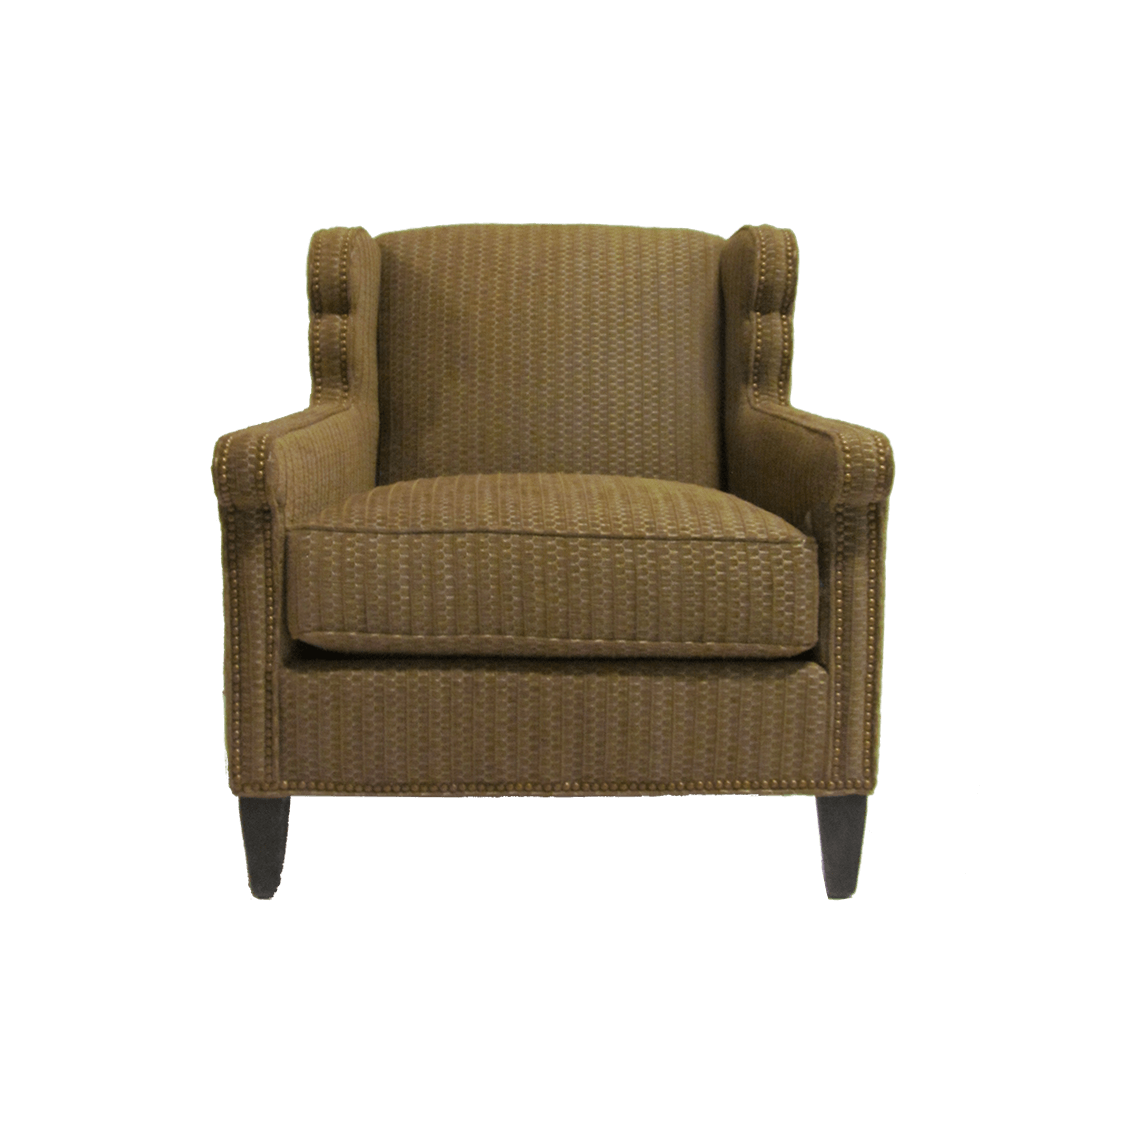 Huntington_Furniture_Co_Lounge_Chair- Modified Wingback